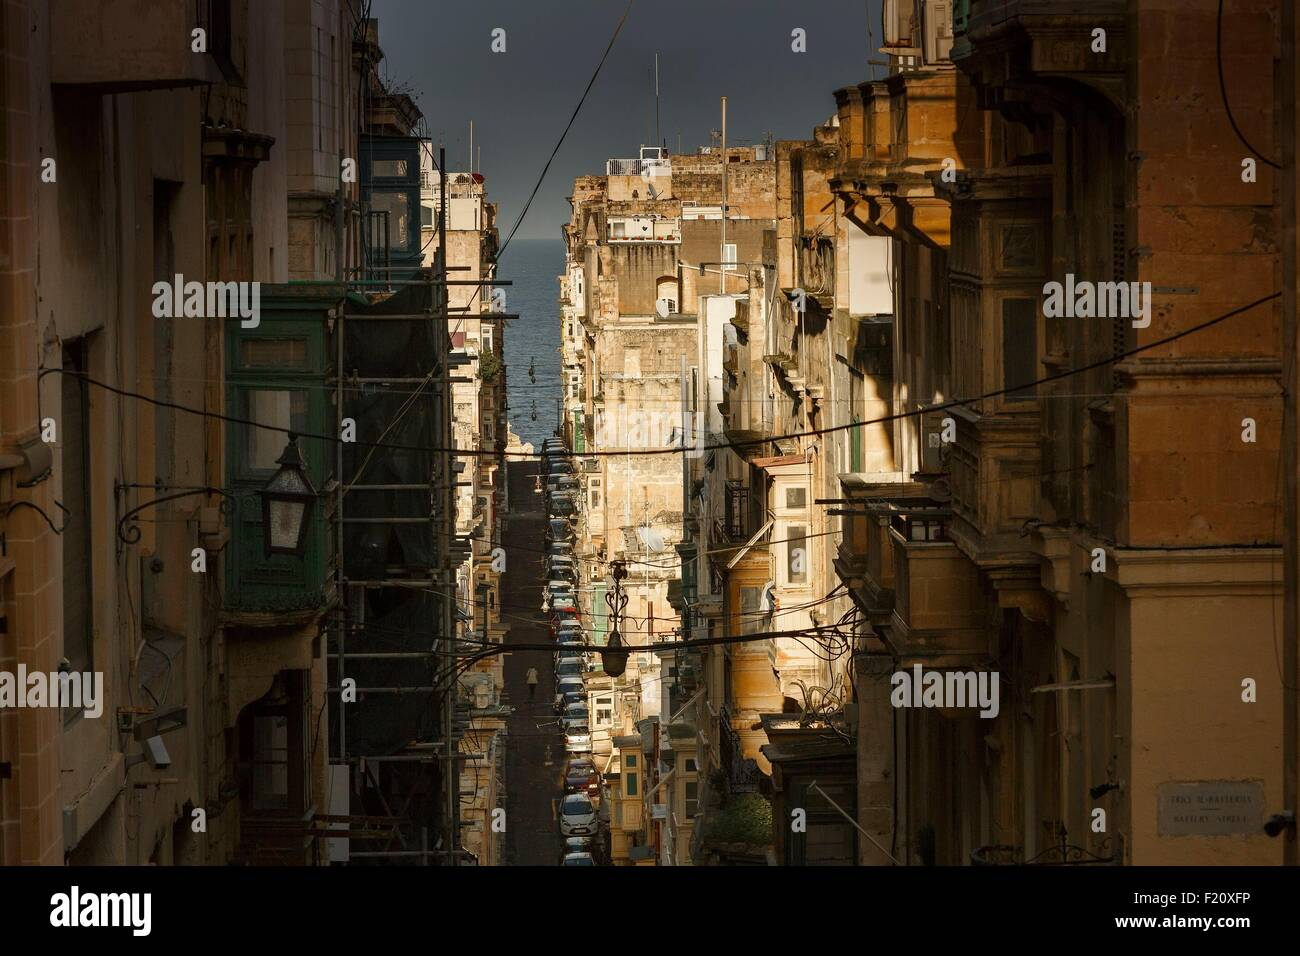 Malta, Valletta, listed as World Heritage by UNESCO,street of the historic city center under a stormy light after - Stock Image